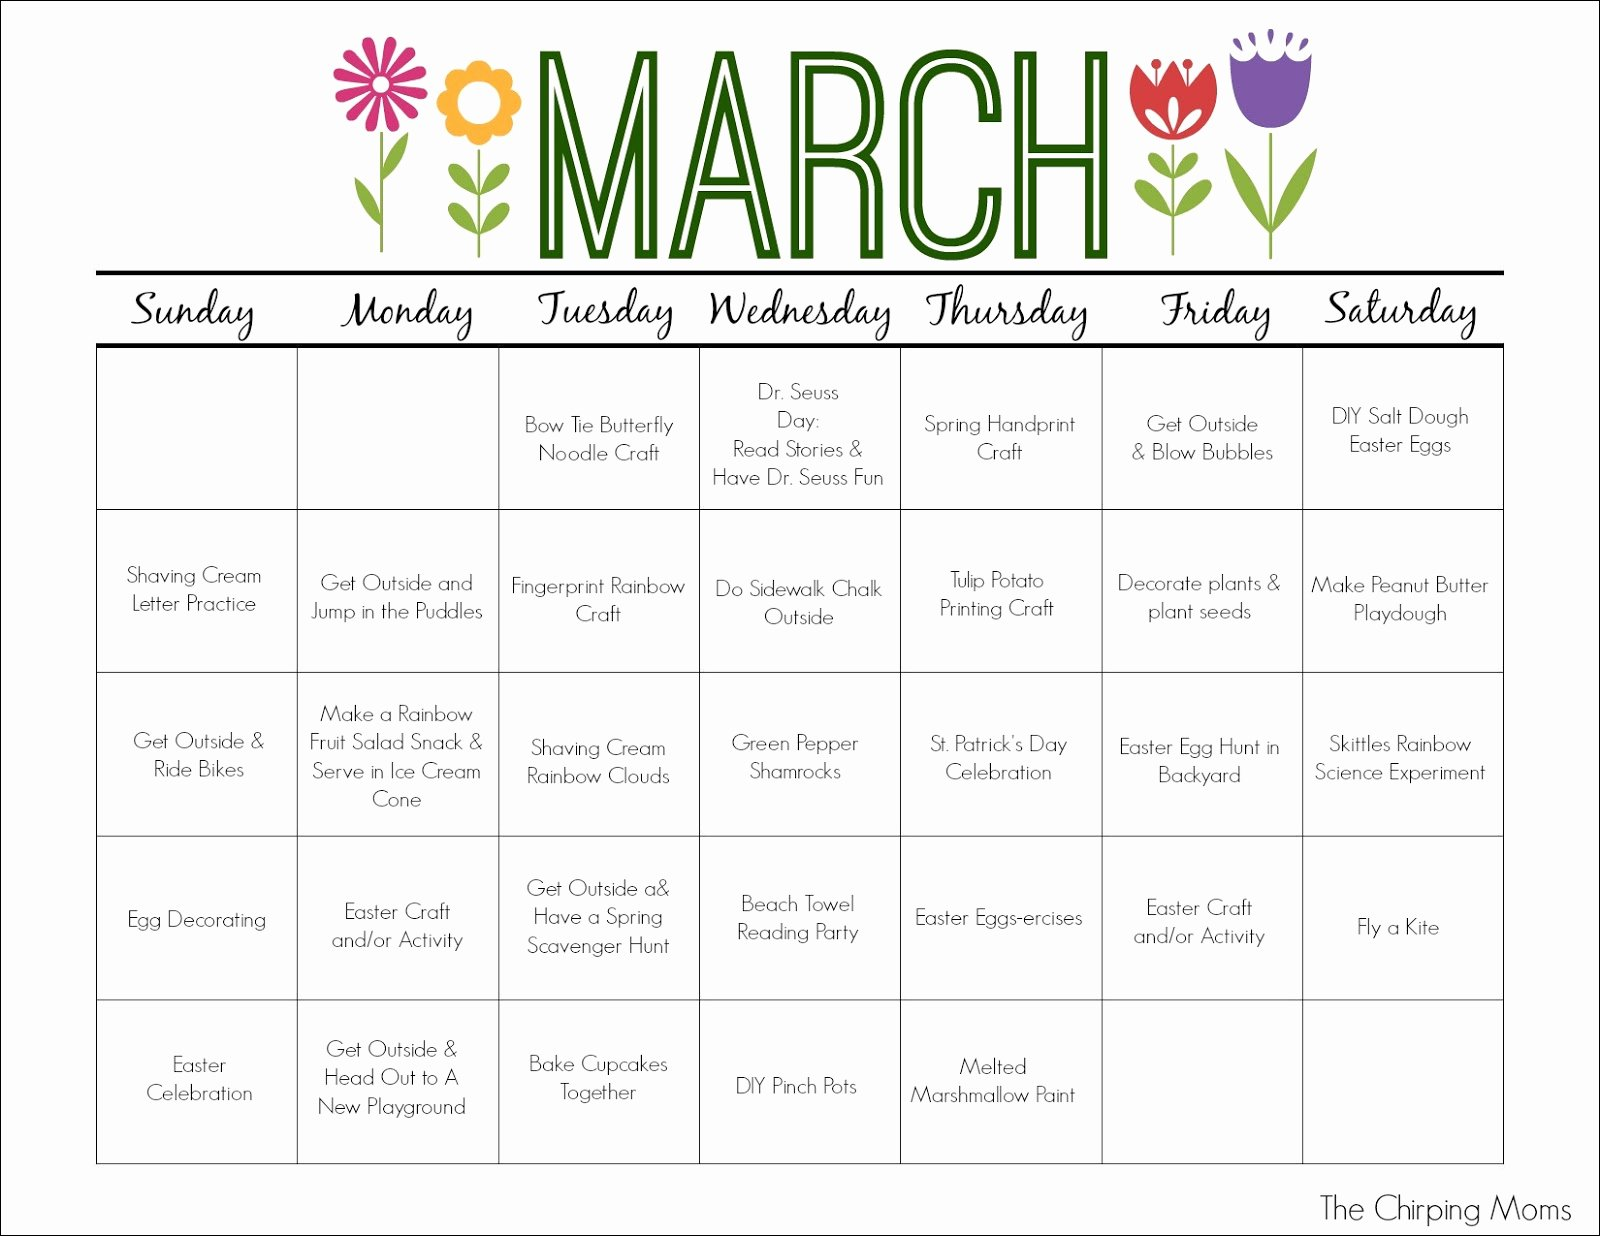 Blank Calendar for Kids Inspirational March Printable Activity Calendar for Kids the Chirping Moms